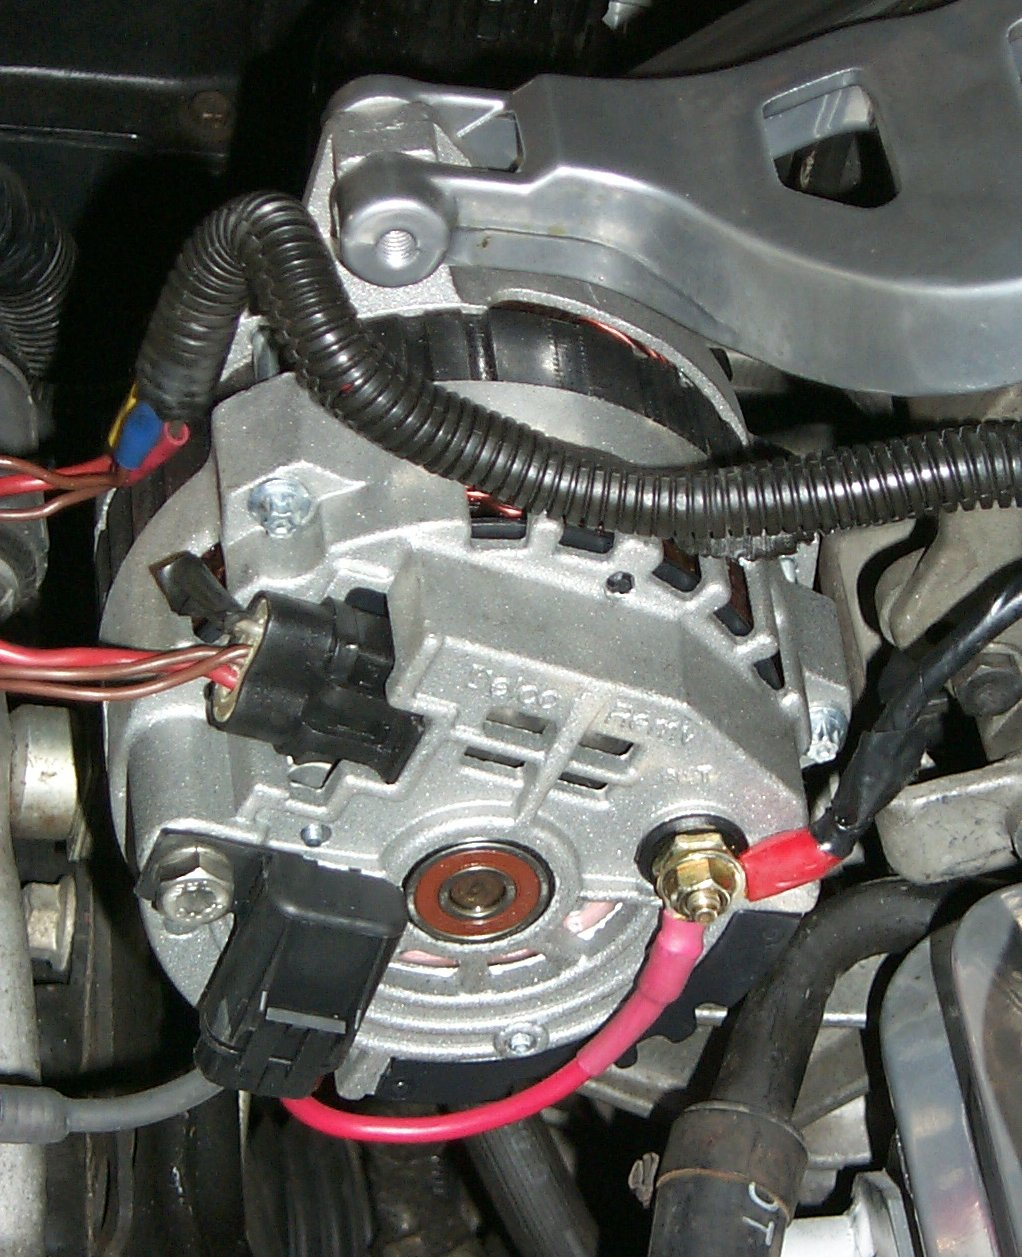 Lt1 Alternator Wiring Swap Diagram 34 Images 24x Harness Extra Fuel Pump Relay C4 Alt Hookup 01 Gm At